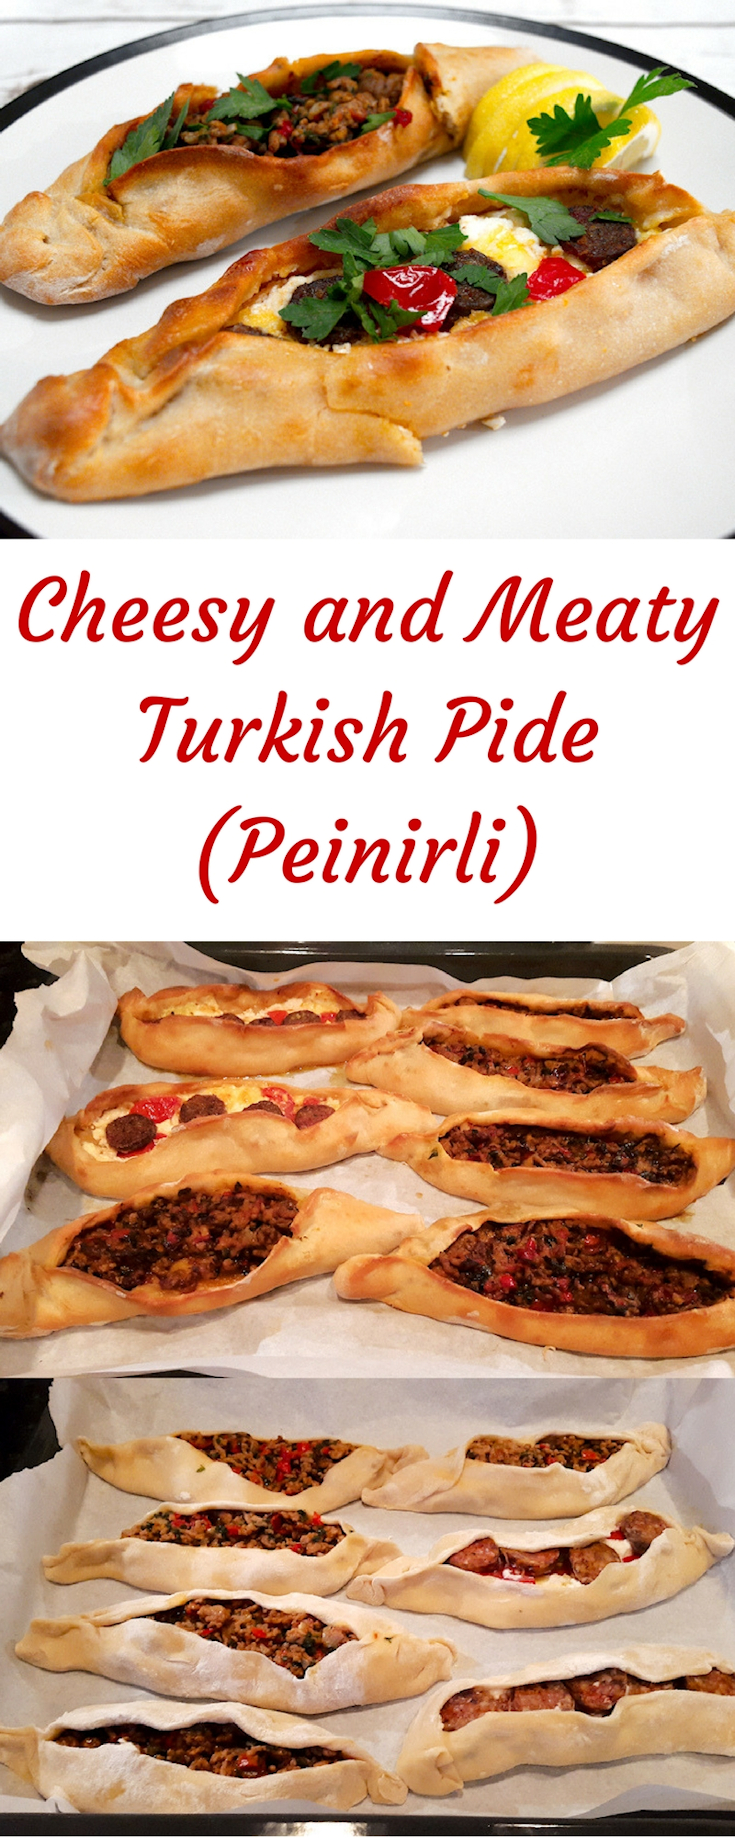 Cheesy and Meaty Turkish Pide (Peinirli)